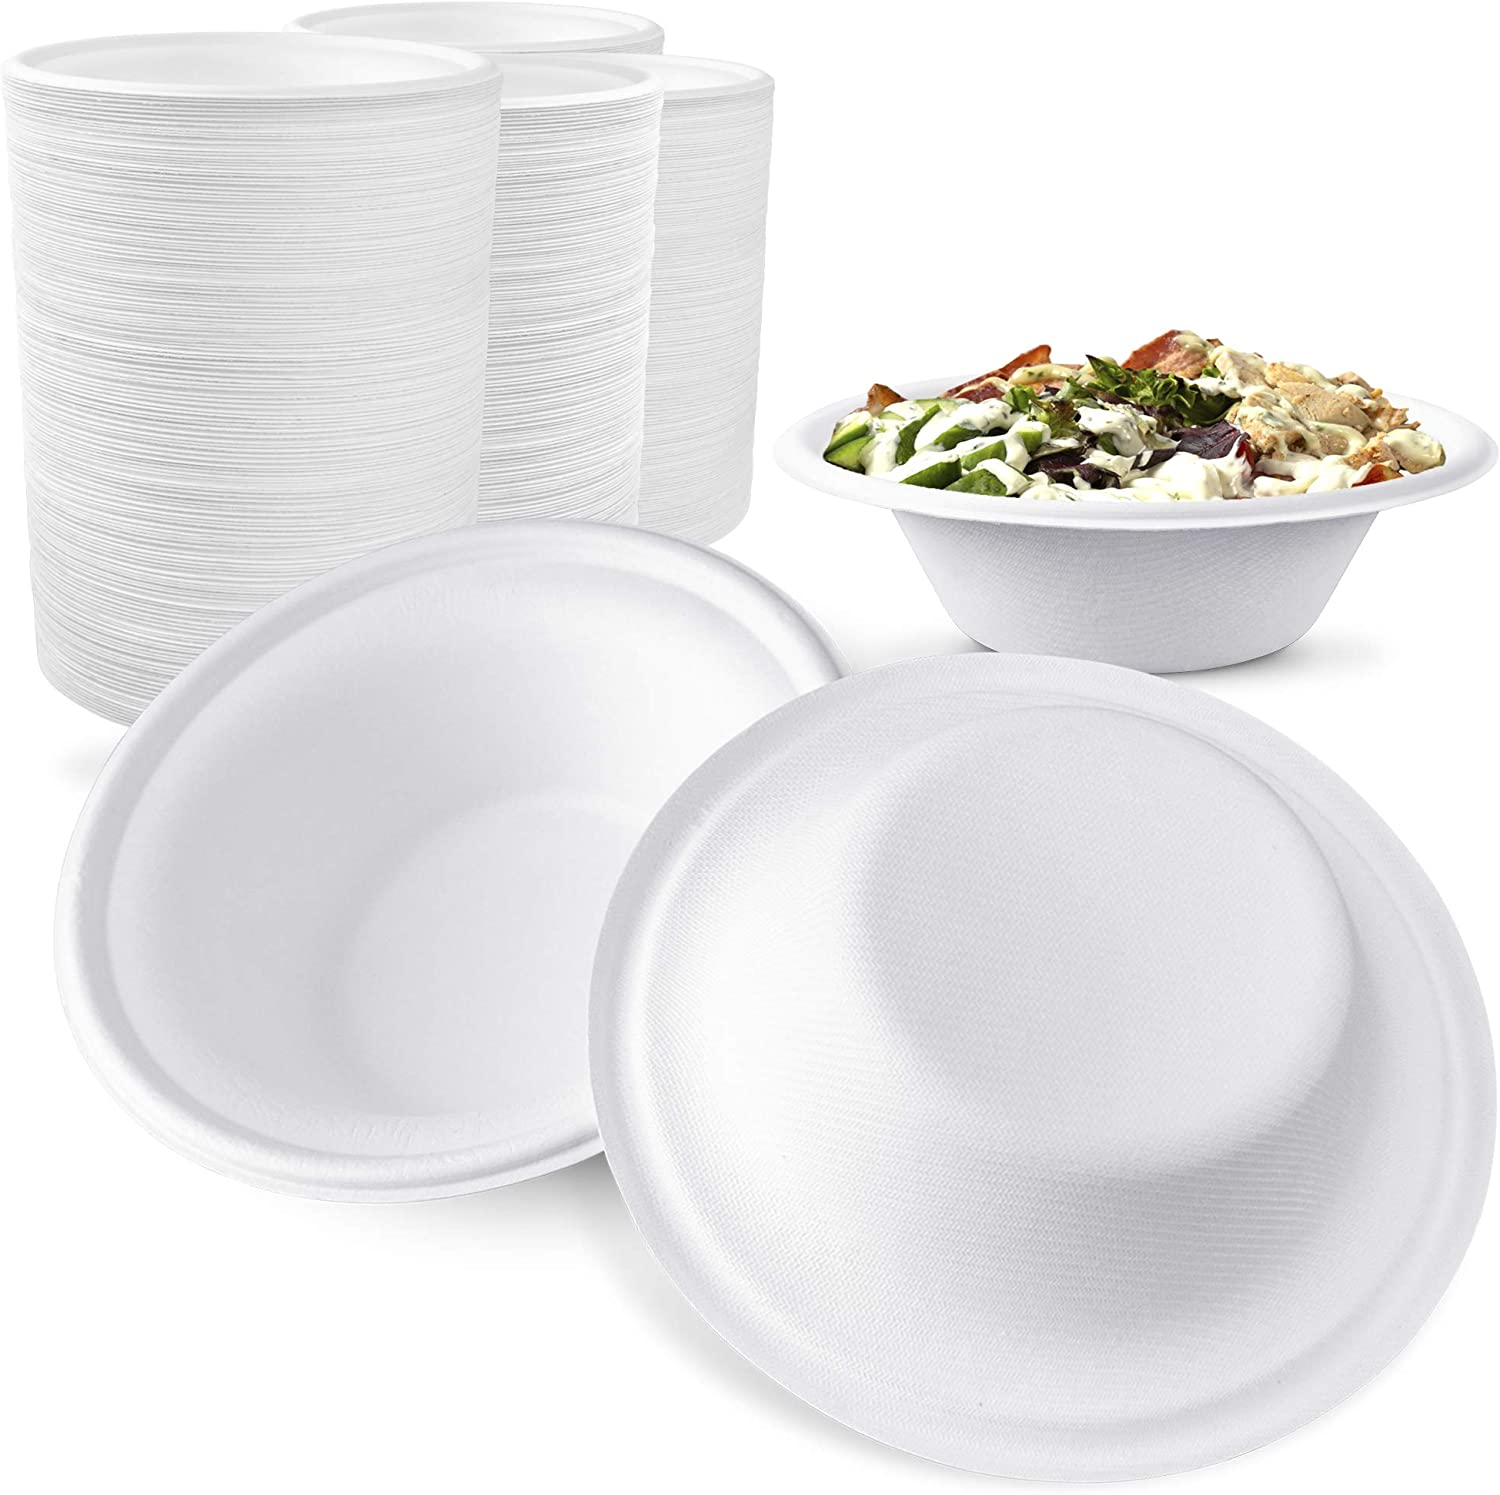 Max 59% OFF 2021 1000 Pack 12 oz White Biodegrad Compostable Disposable - Bowls